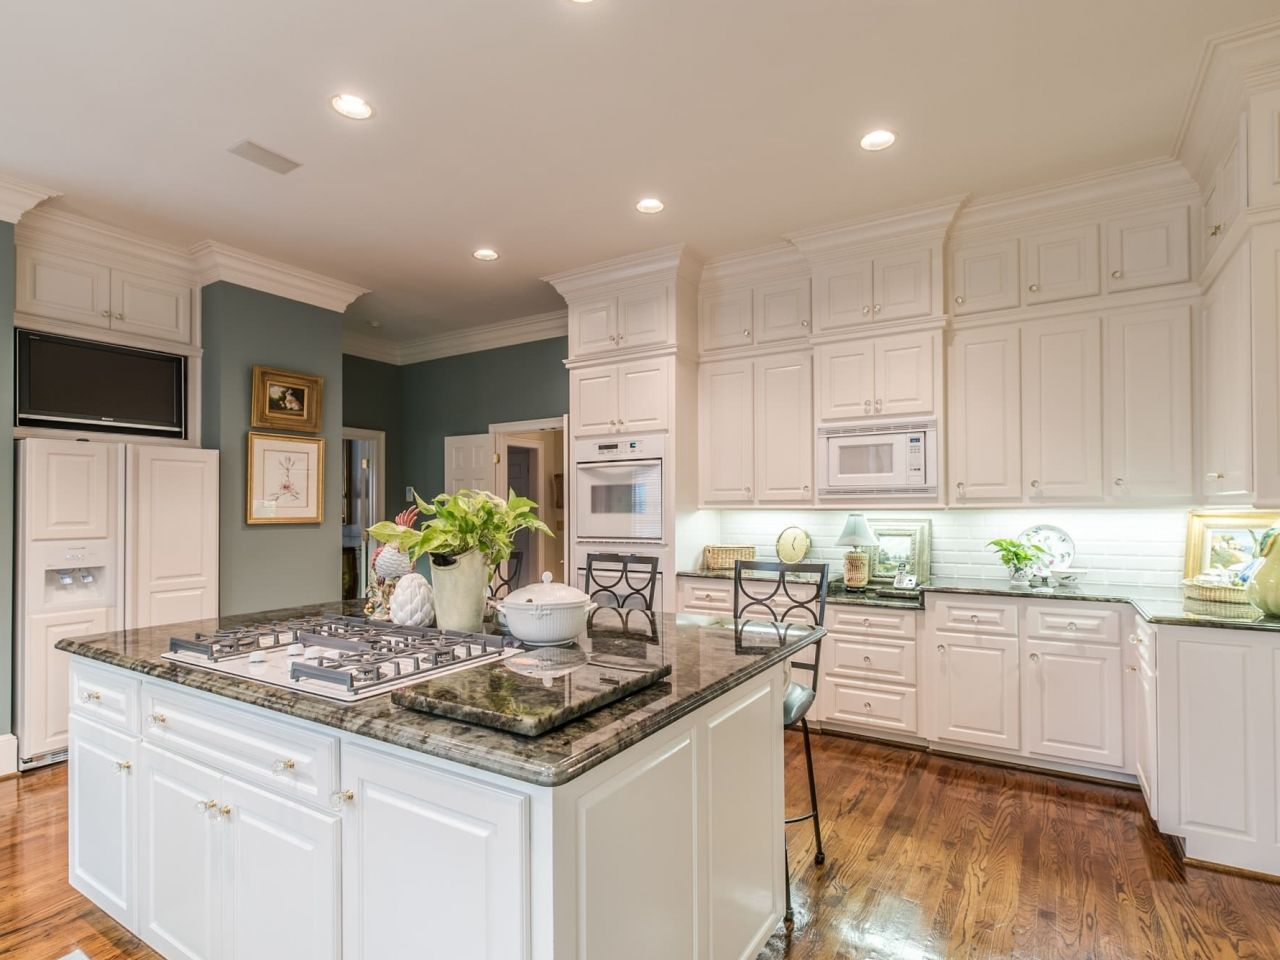 Project By East Coast Granite Marble In Columbia Sc This Stone Is A Labradorite Madagascar Q Kitchen Countertops Free Kitchen Design Kitchen Tools Design